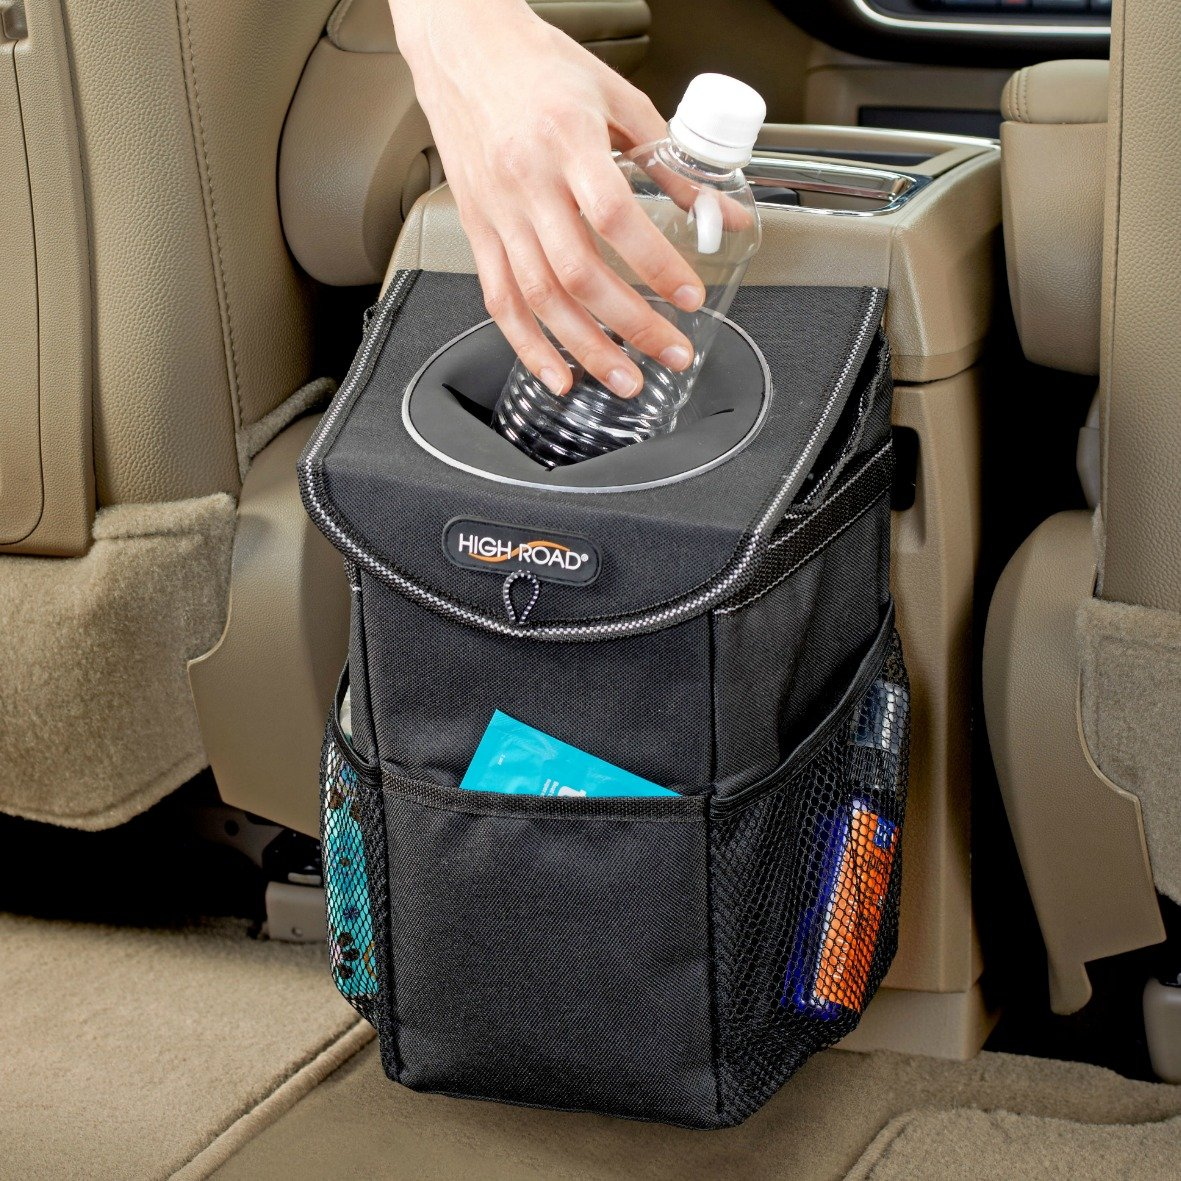 Car Trash Can - Don't be that person who stuffs their trash in the side pockets of the car door or worse, on the floor of the vehicle. This covered storage is leakproof, helps with odor control, and attaches to the back of your center console. It's compact and even has outside pockets for other small items you rather not be floating around.